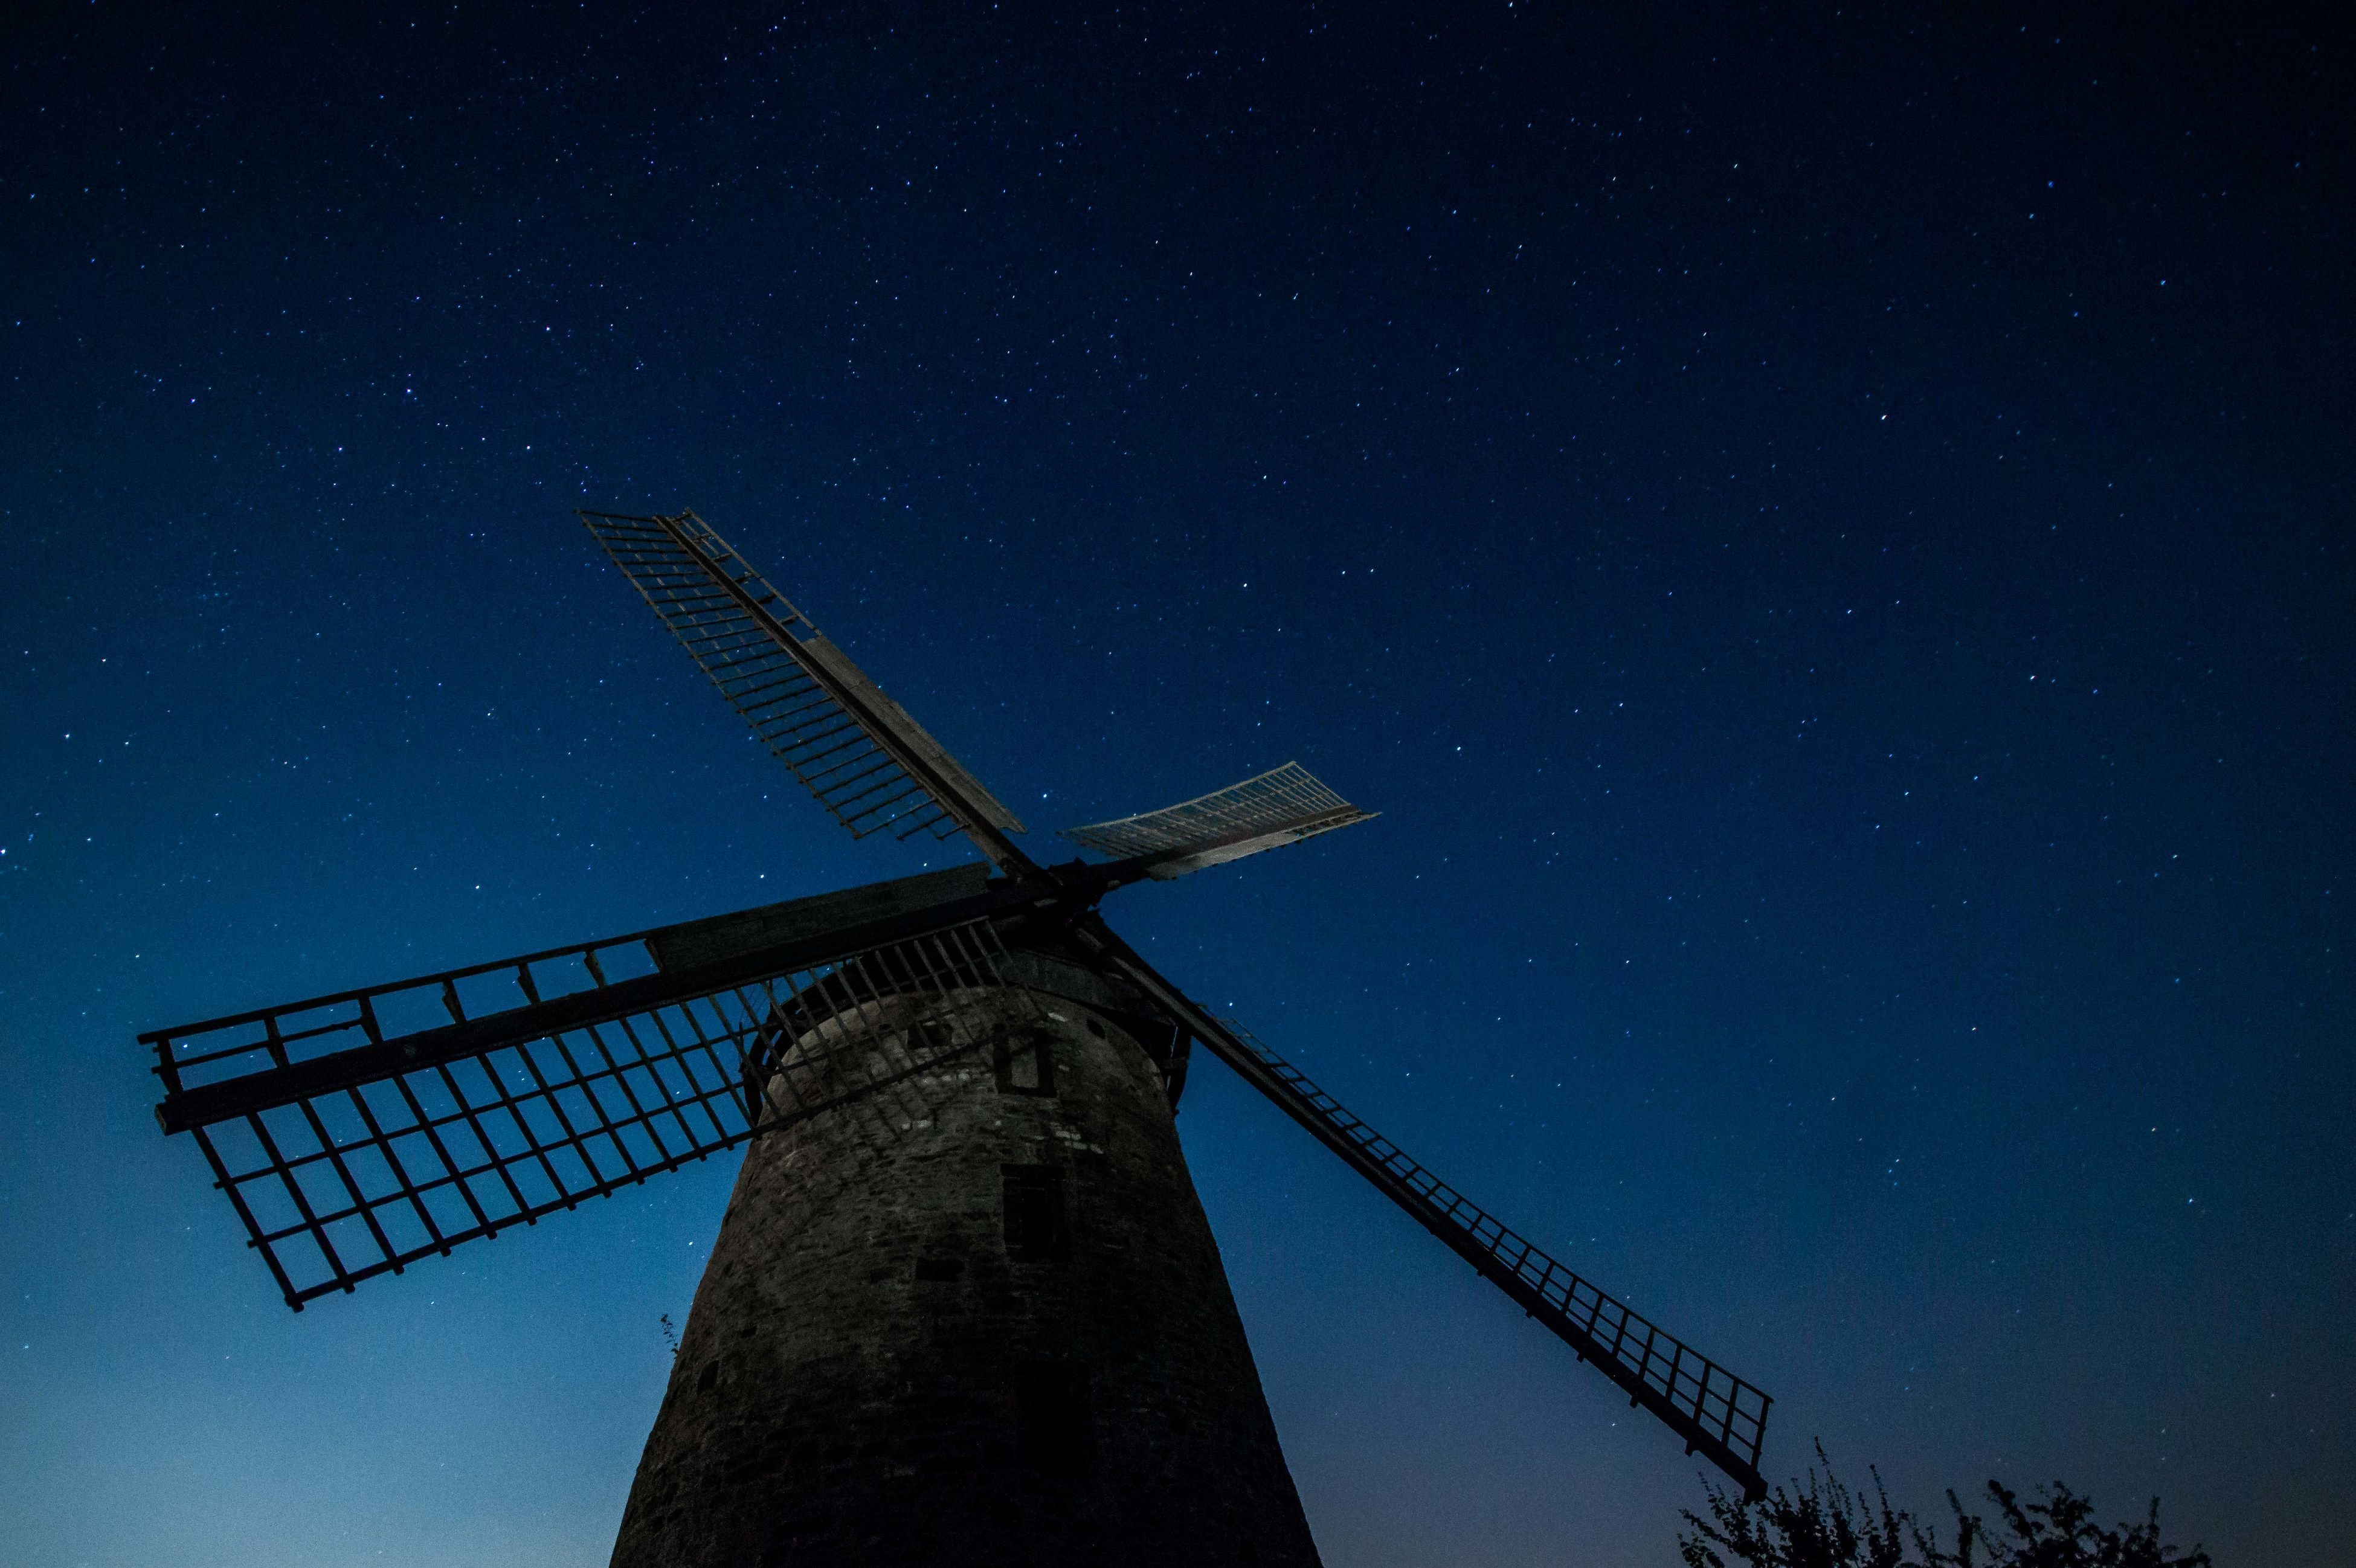 low angle view, alternative energy, wind power, wind turbine, fuel and power generation, windmill, renewable energy, environmental conservation, sky, technology, traditional windmill, built structure, silhouette, night, industry, crane - construction machinery, outdoors, smoke stack, no people, clear sky